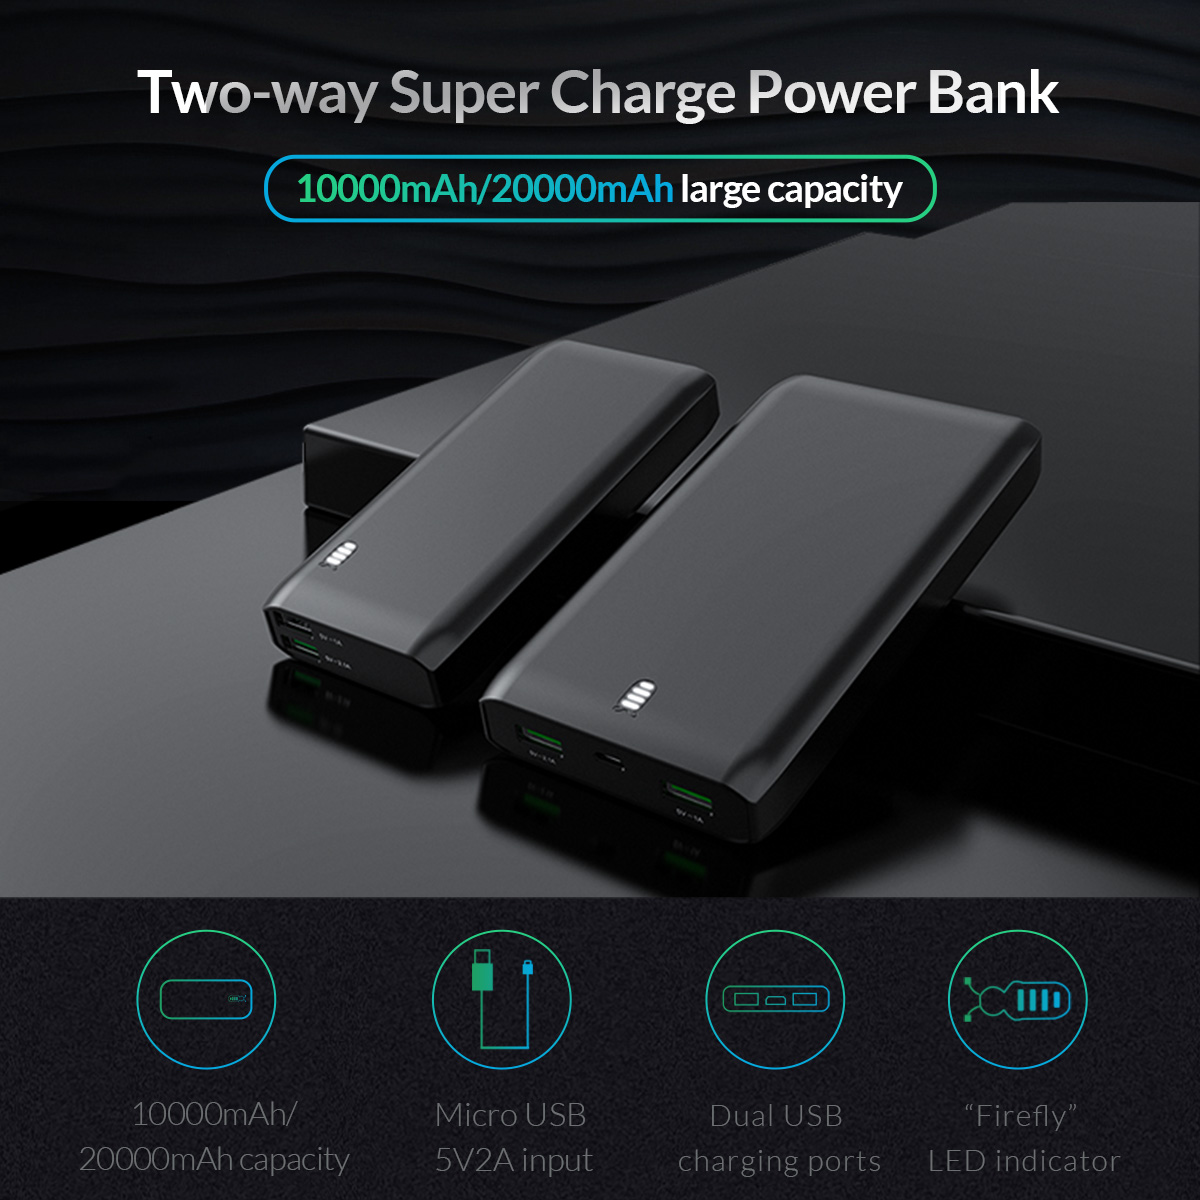 two-way super charge power bank